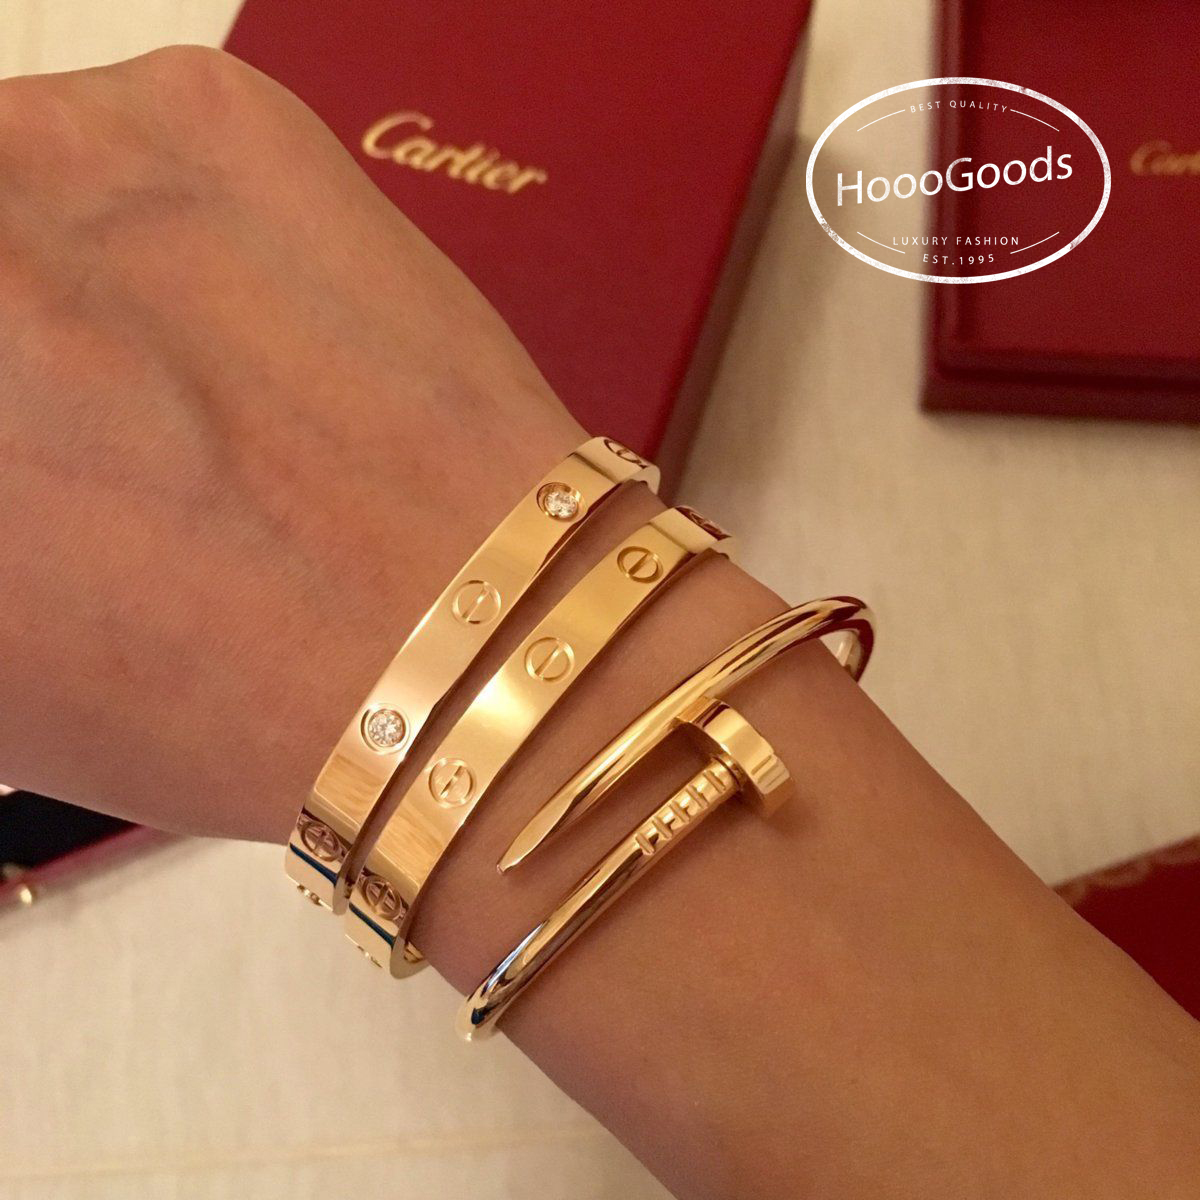 Cartier love bracelet stacking ideas with Cartier juste un clou bracelet/nail bangle